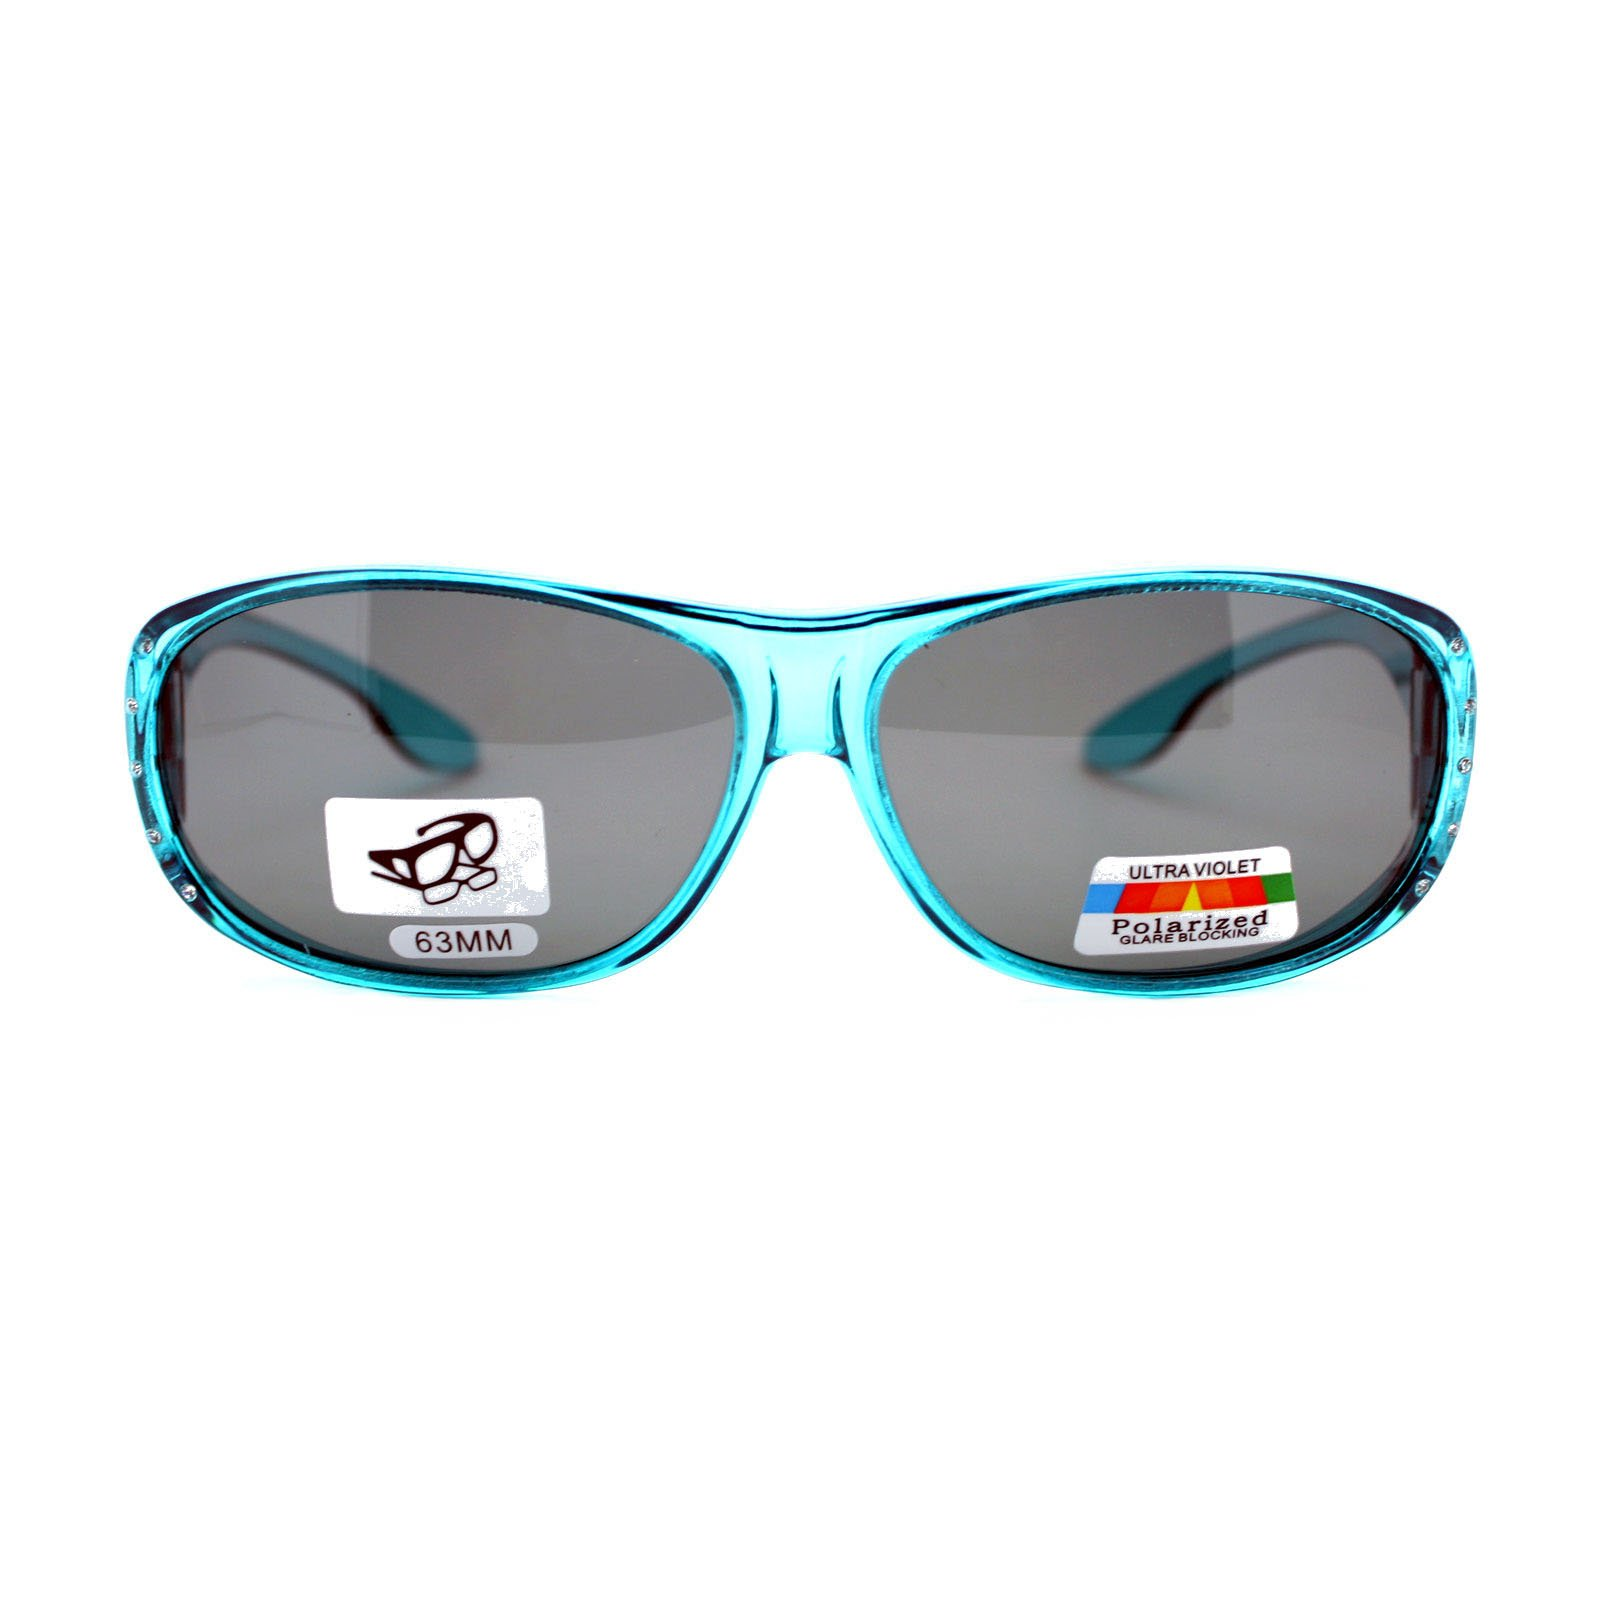 Womens Polarized Fit Over Glasses Rhinestone Sunglasses Oval Rectangular Teal by PASTL (Image #2)